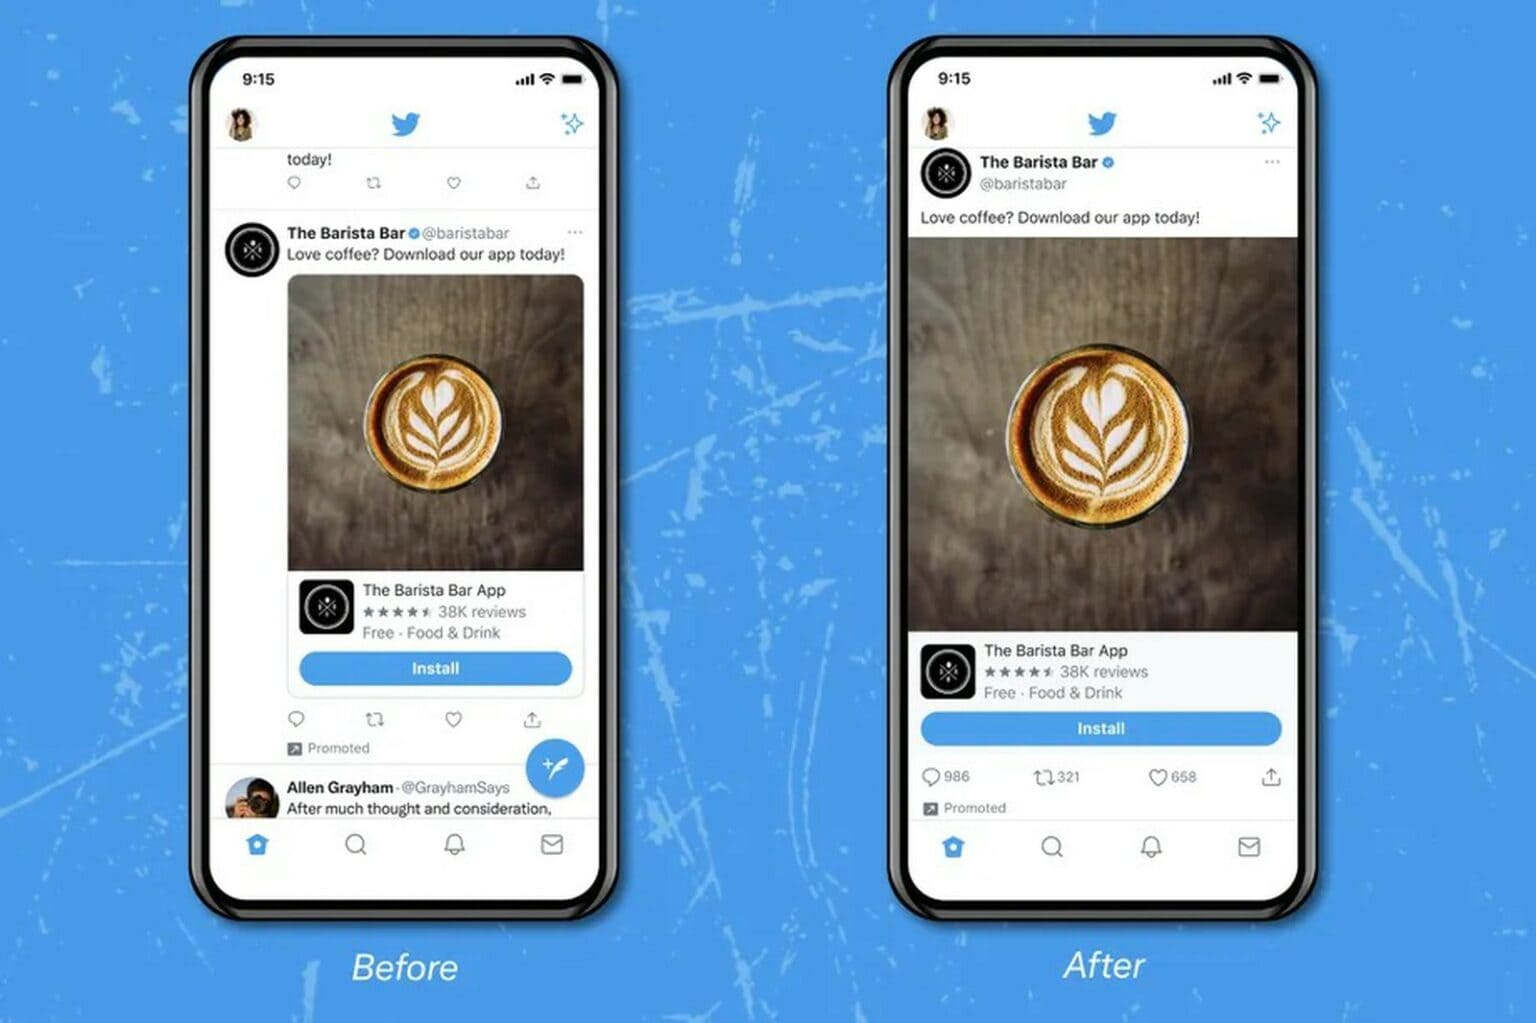 Twitter tests new interface on iOS